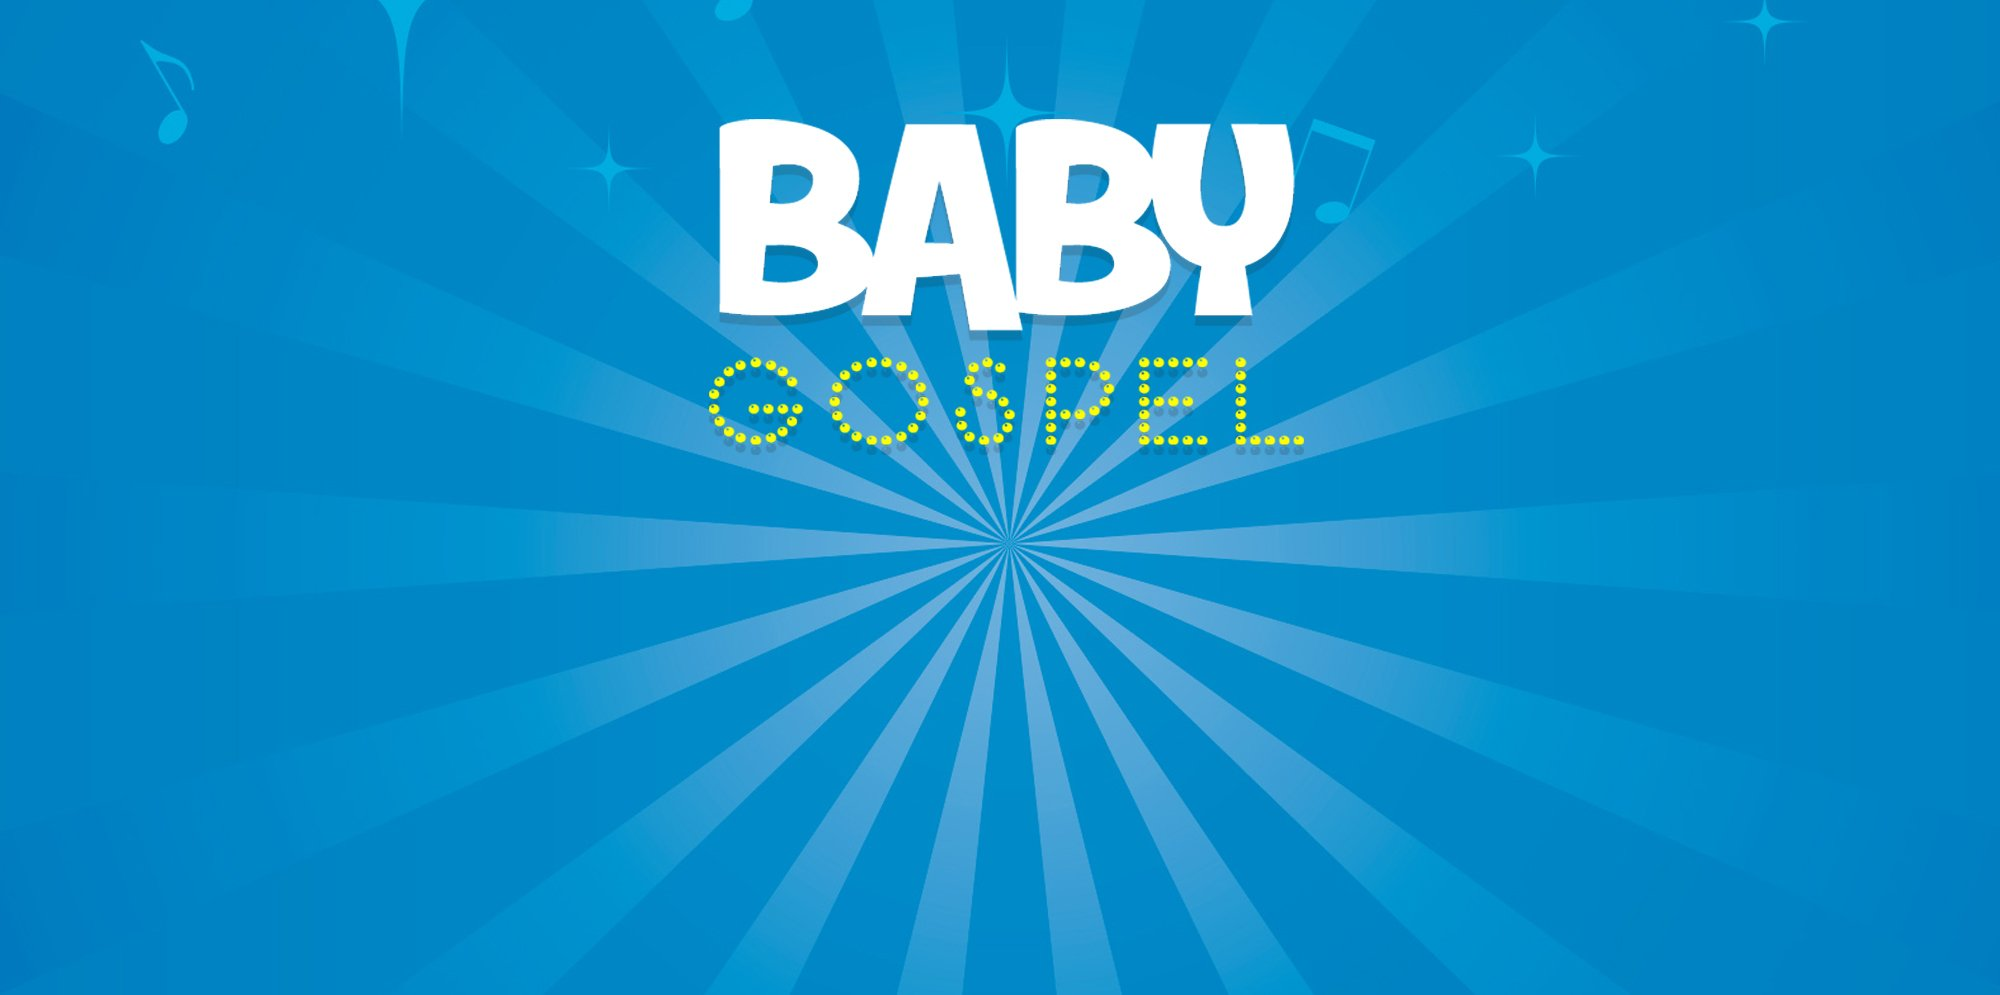 The words baby gospel are on a blue background.